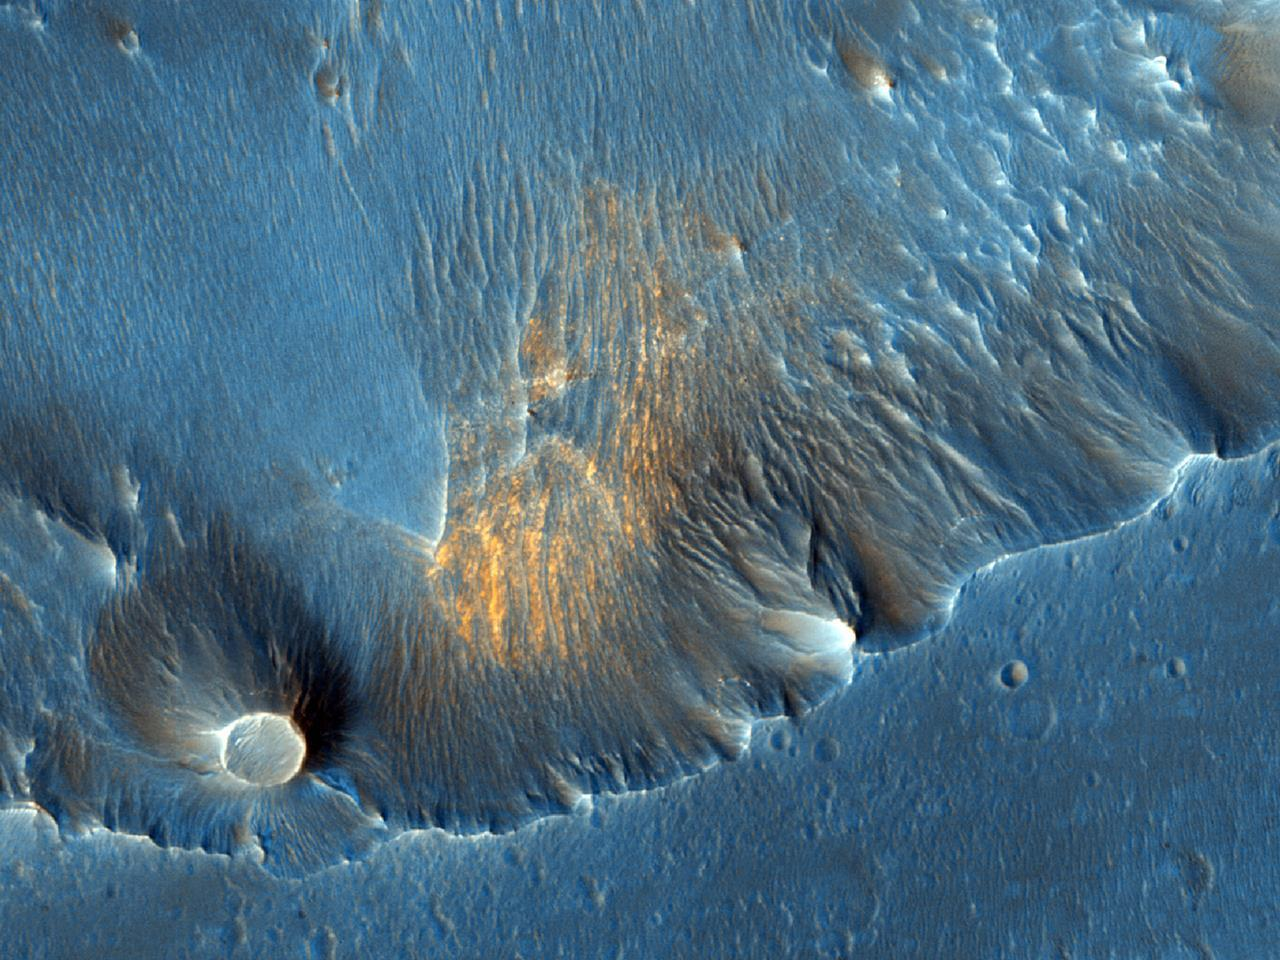 Mars_images-satellite_Hematite_in_Capri_Chasma_photos-by-NASA-and-ESA_best-selection-photography